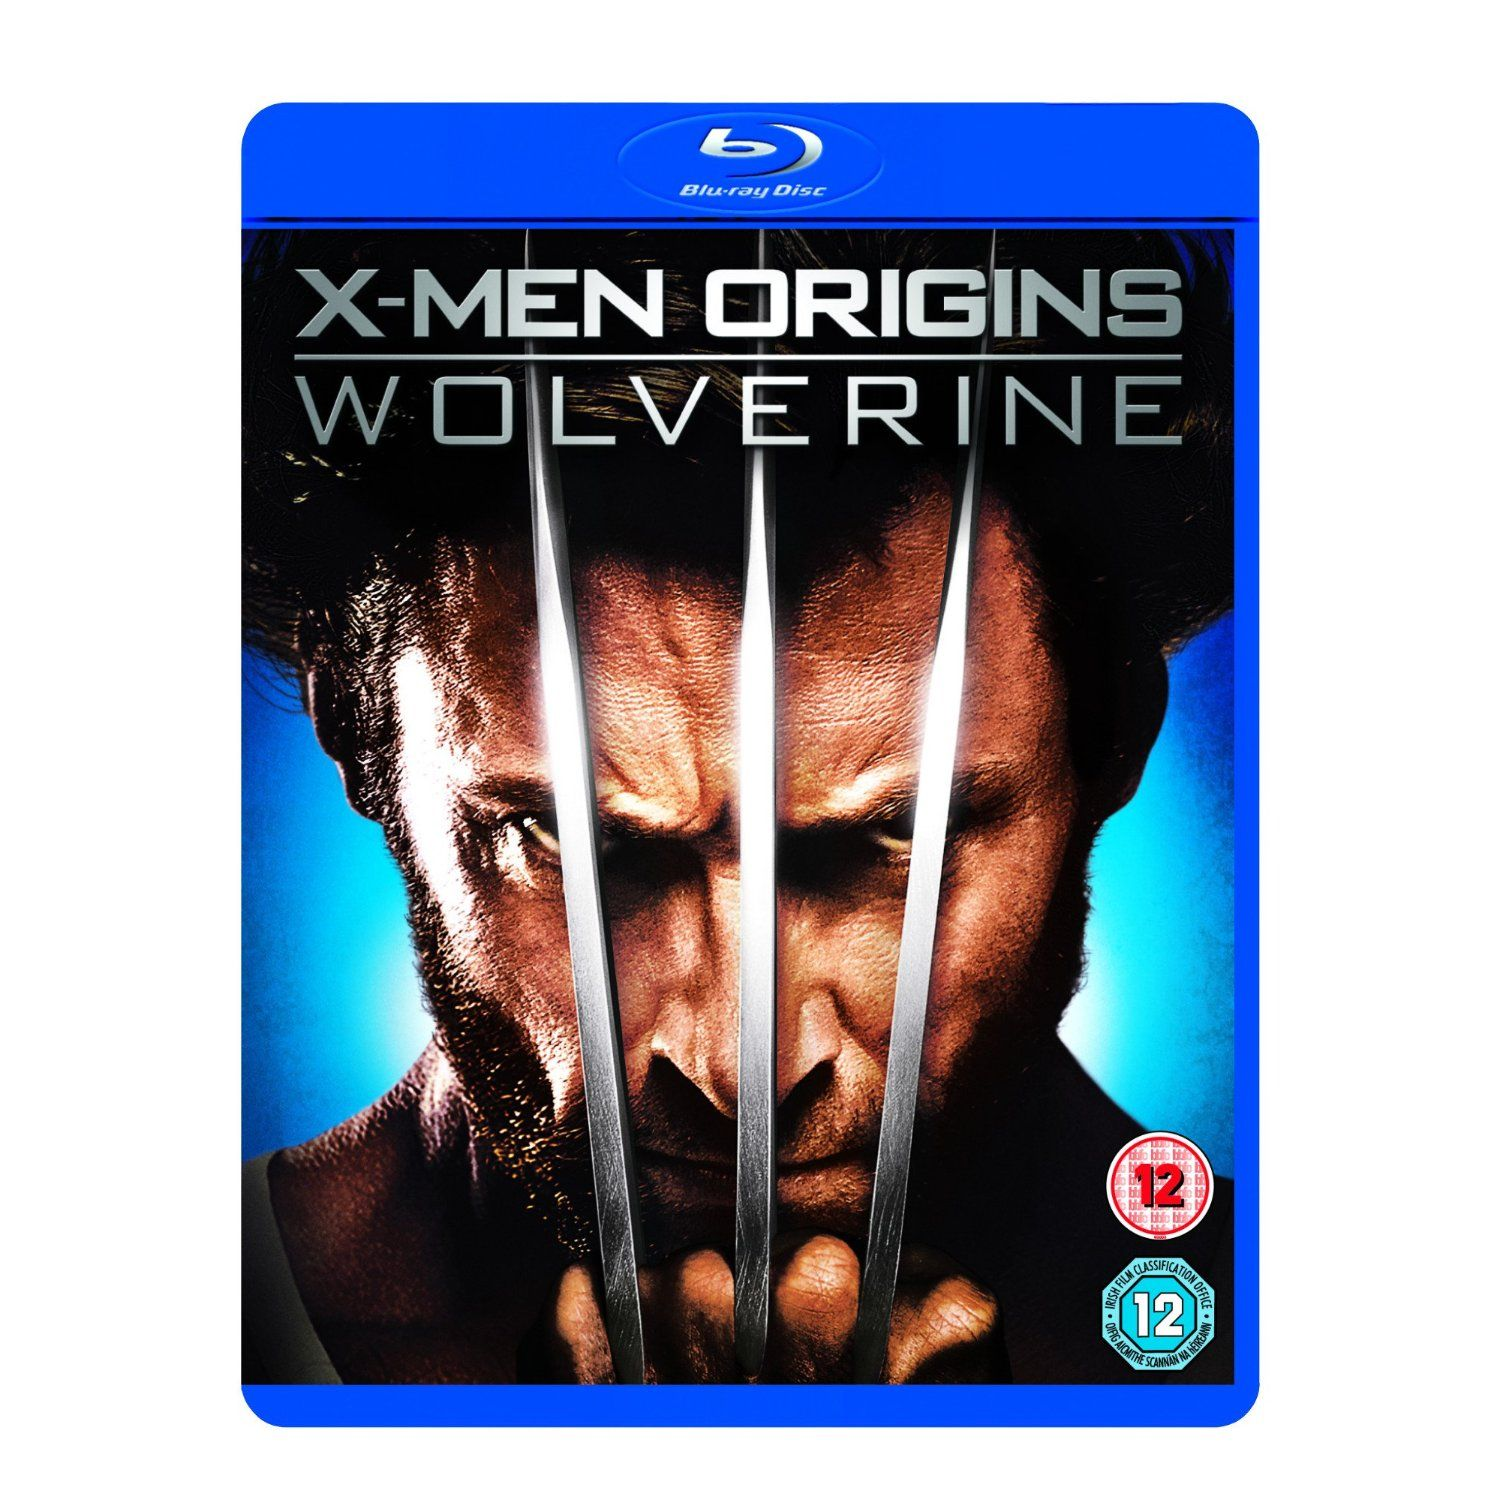 X Men Origins Wolverine Wolverine 2009 X Men Streaming Movies Free